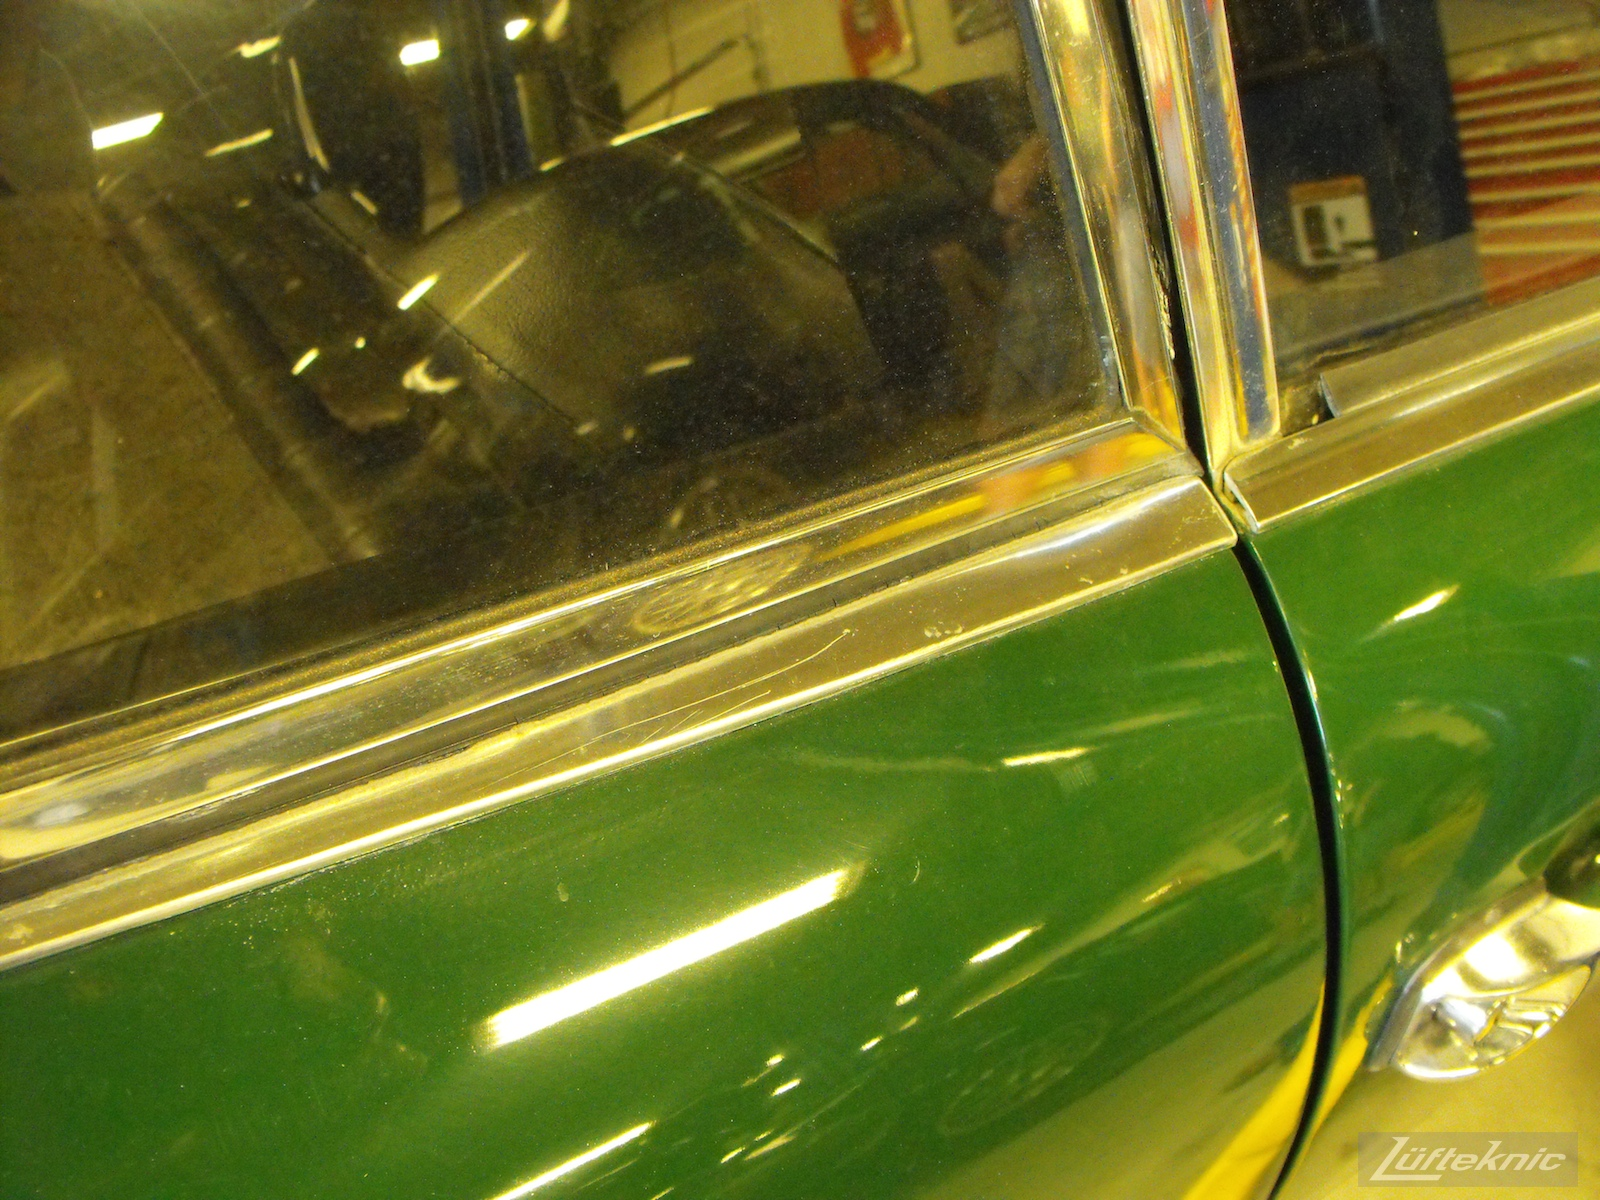 An Irish Green Porsche 912 undergoing restoration at Lufteknic.